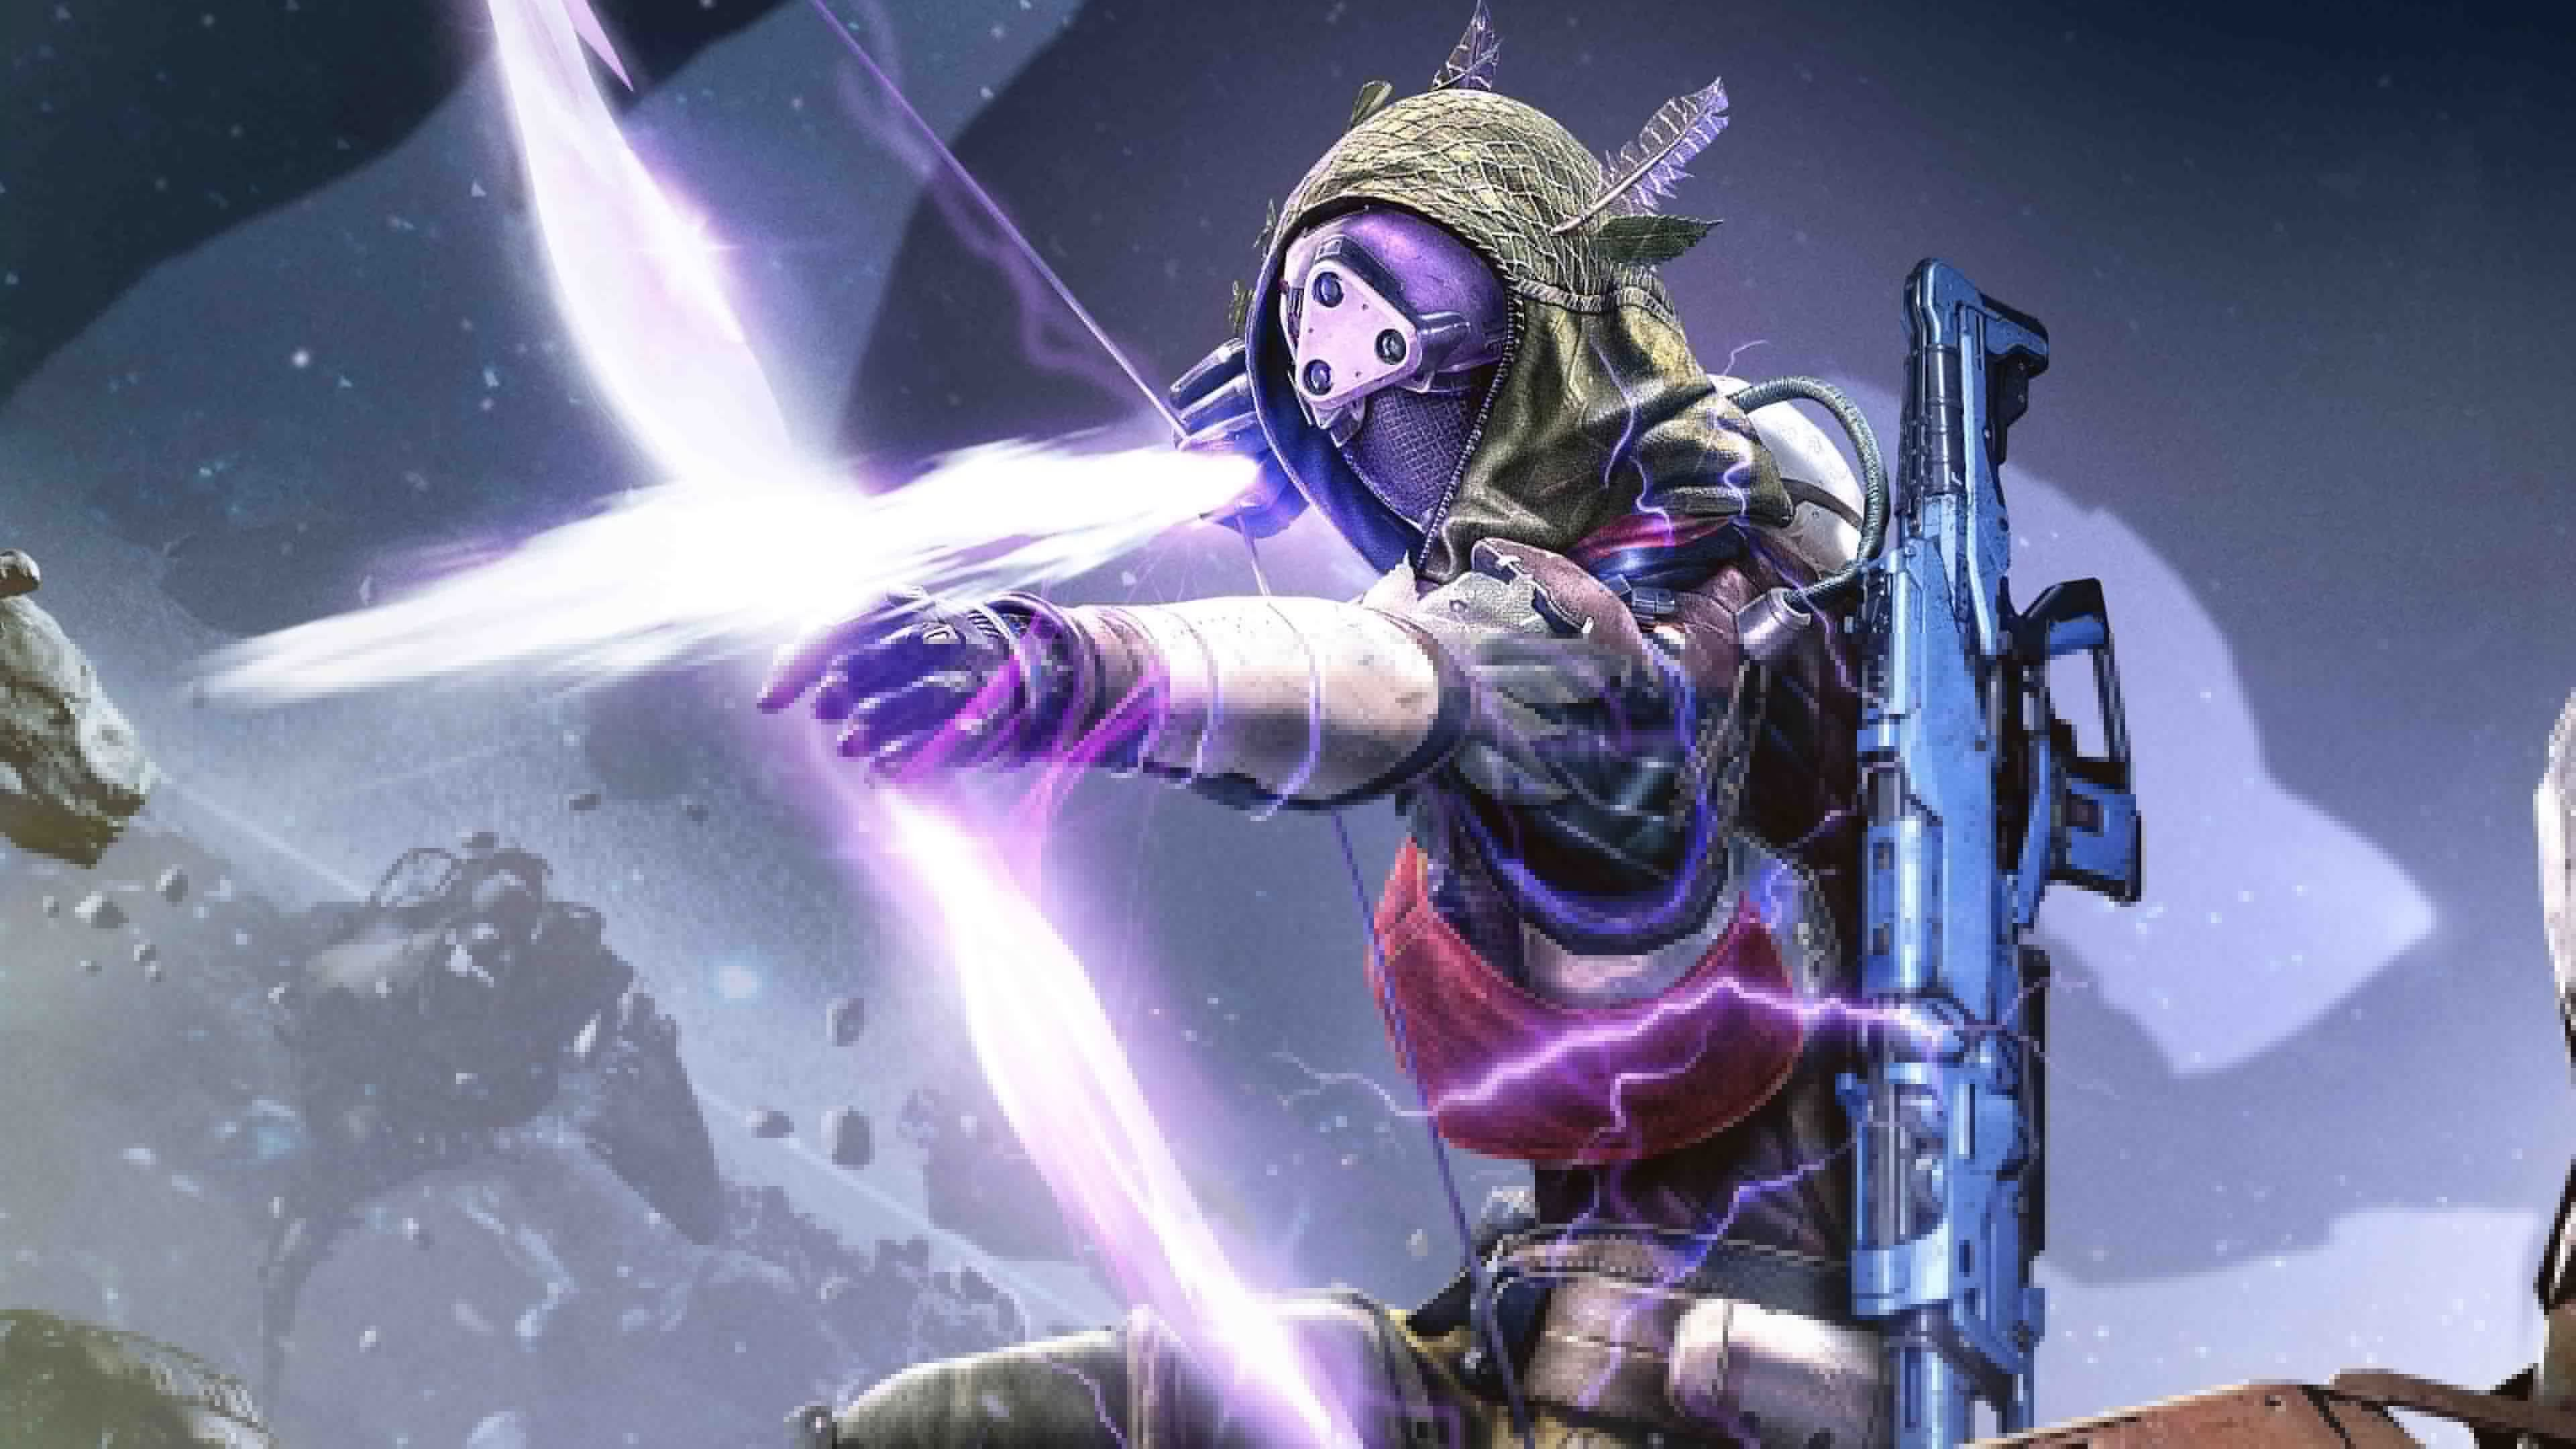 Destiny The Taken King Wallpapers   HD Wallpapers